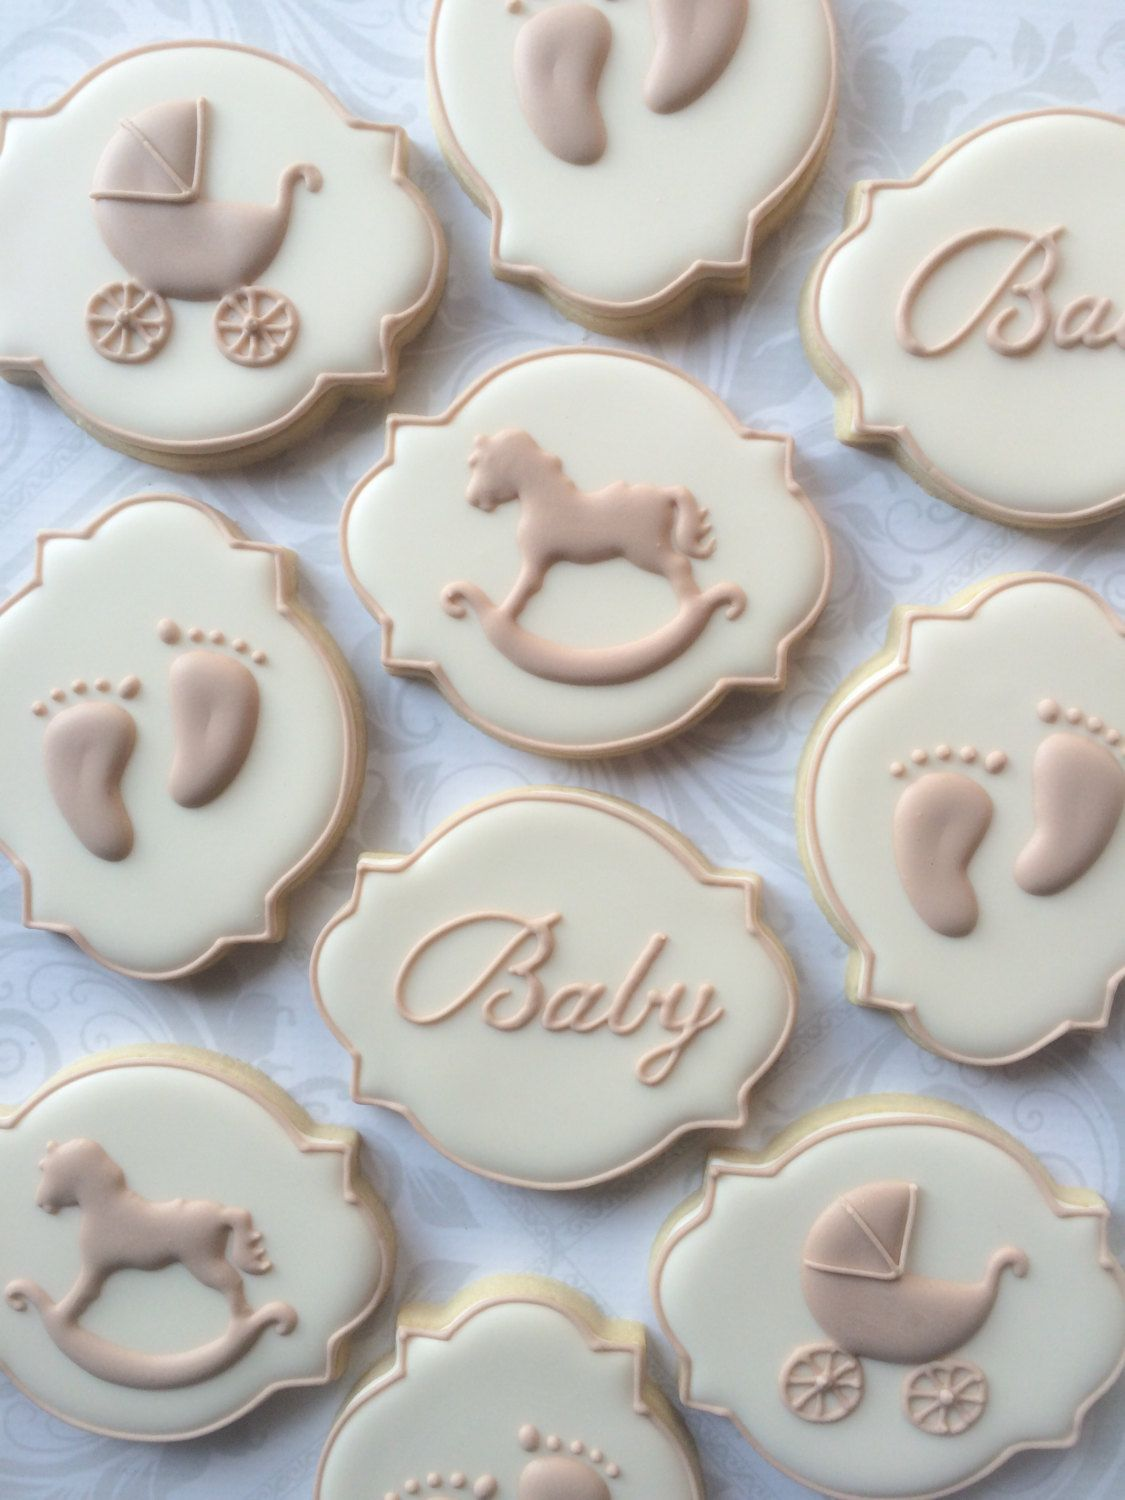 Pin By Baby Essentials On Baby Showers In 2019 Baby Shower Cookies